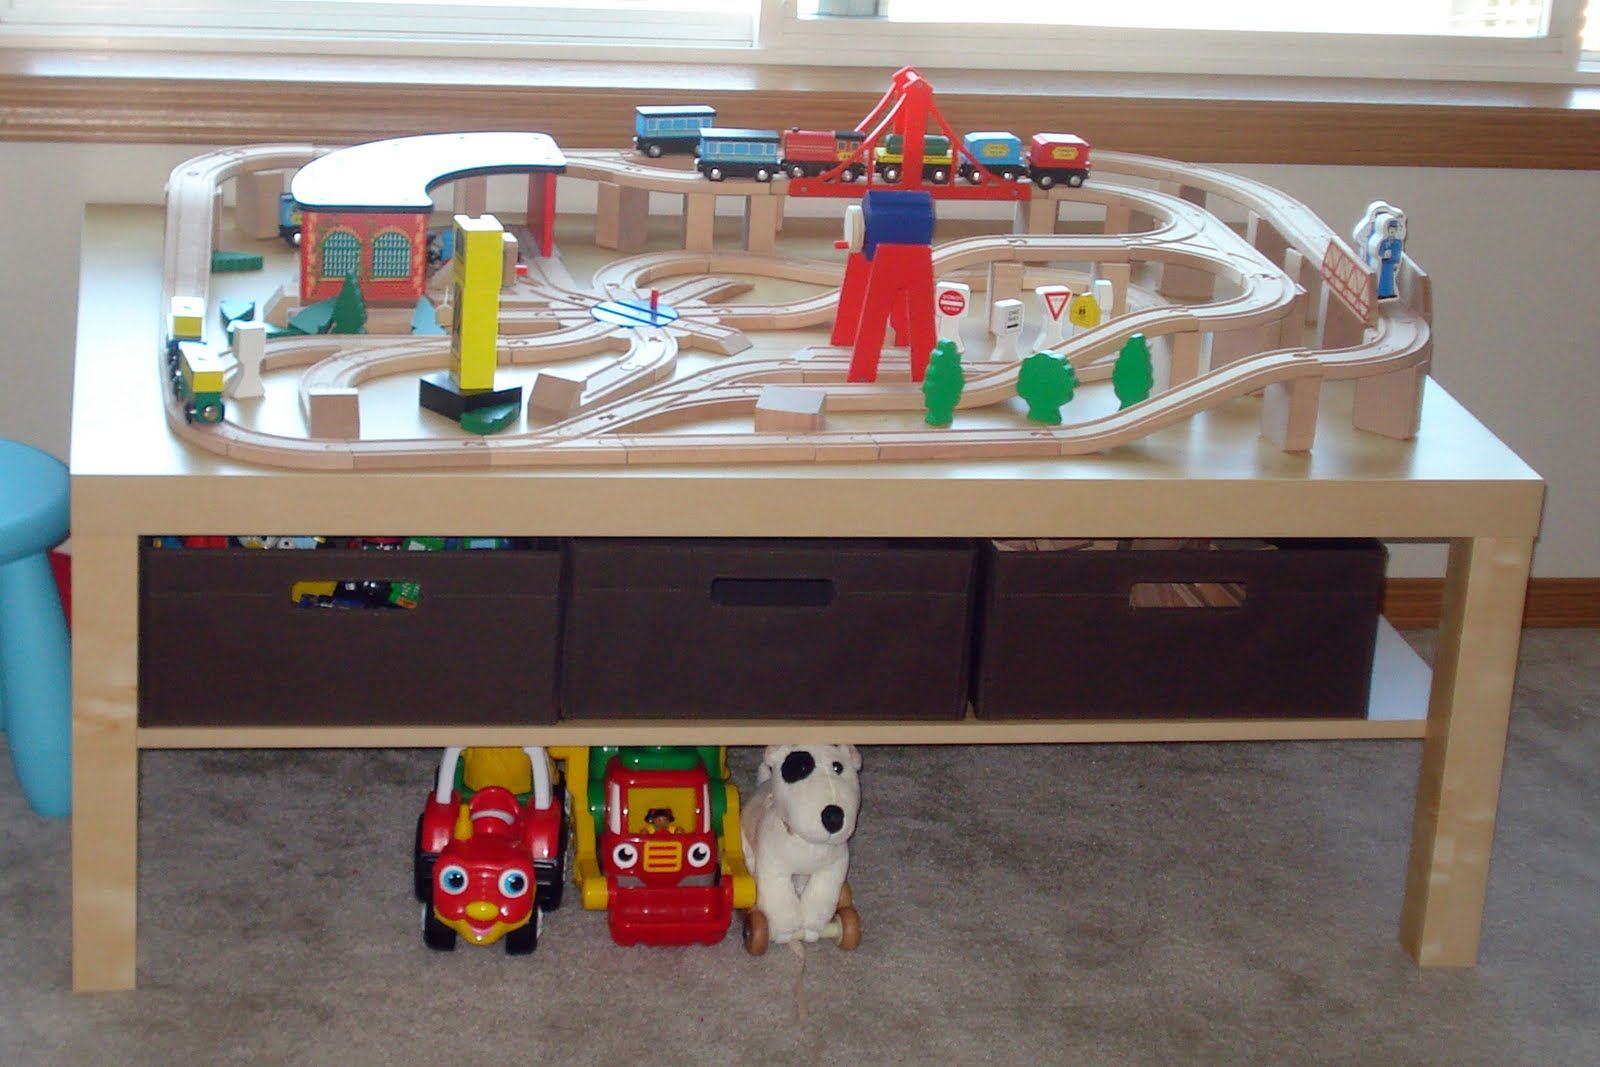 DIY Train Table from $20 IKEA Lack Coffee Table #diy #ikeahack | Furniture  that is Fantastic | Pinterest | Lack coffee table, Train table and Playrooms